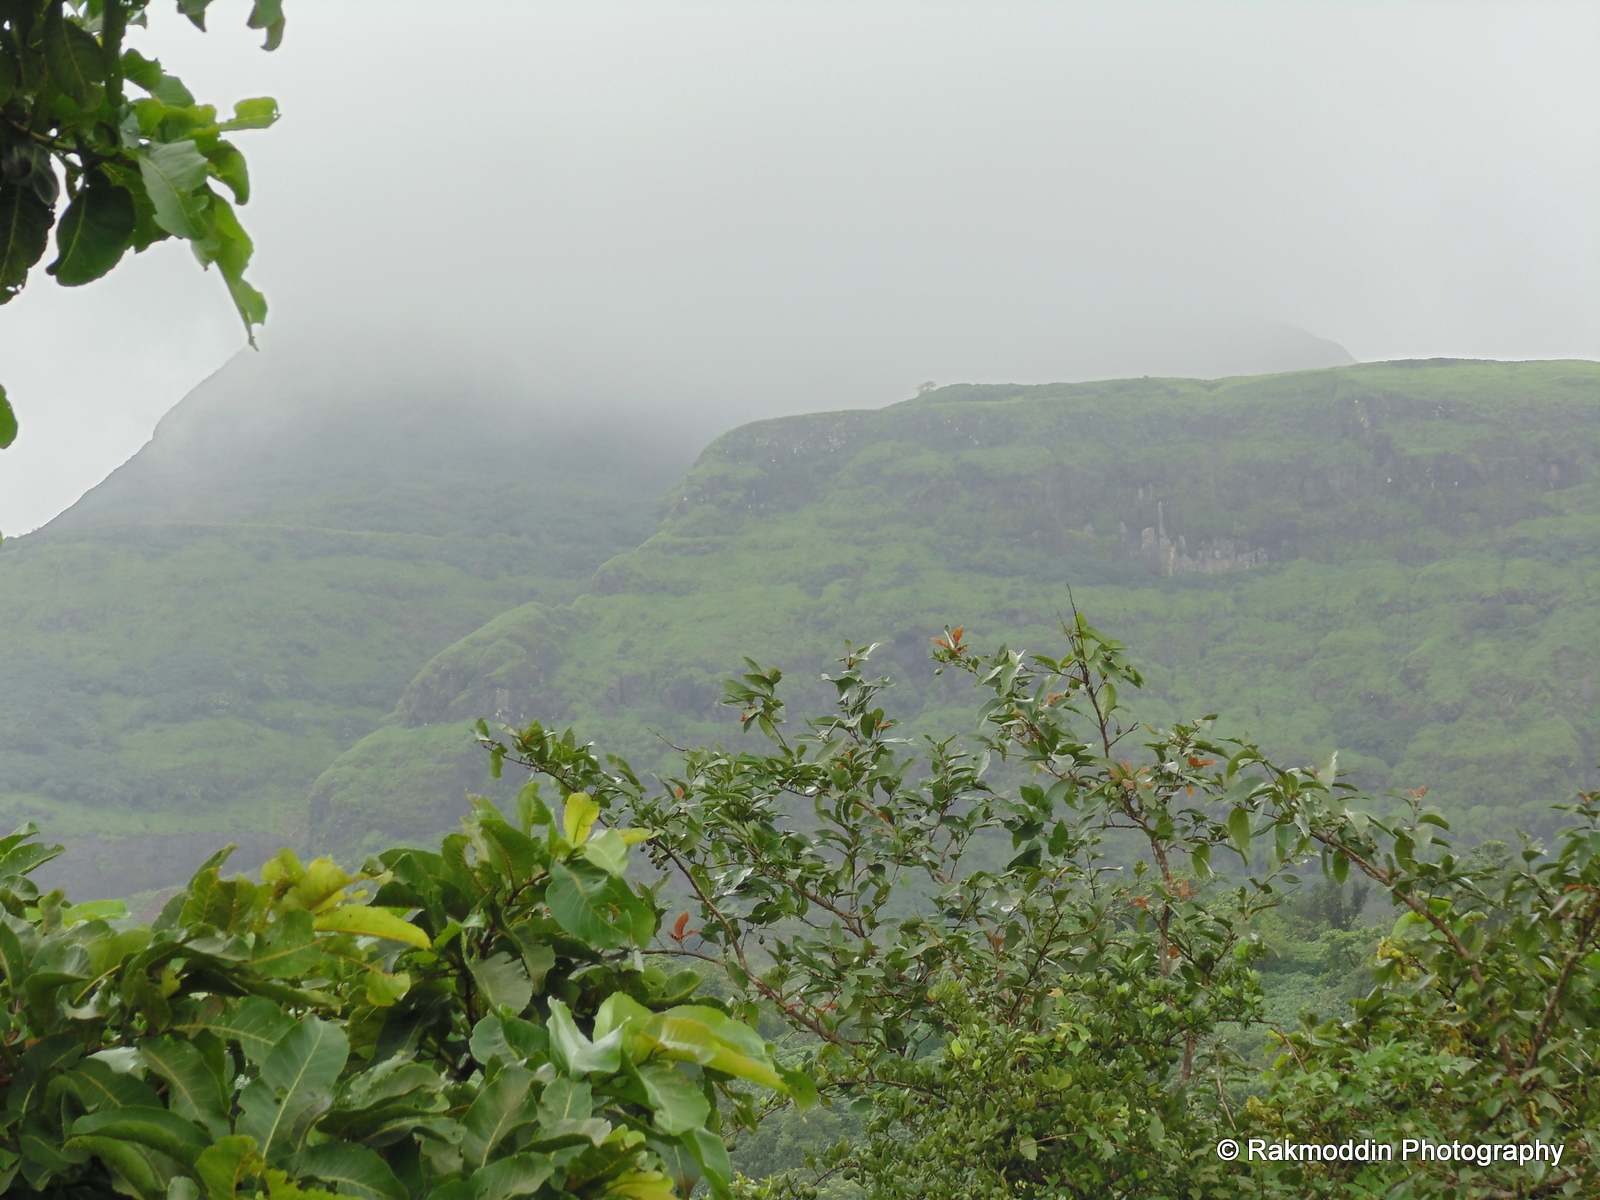 Scenic towards lonavala via pavana dam backwaters